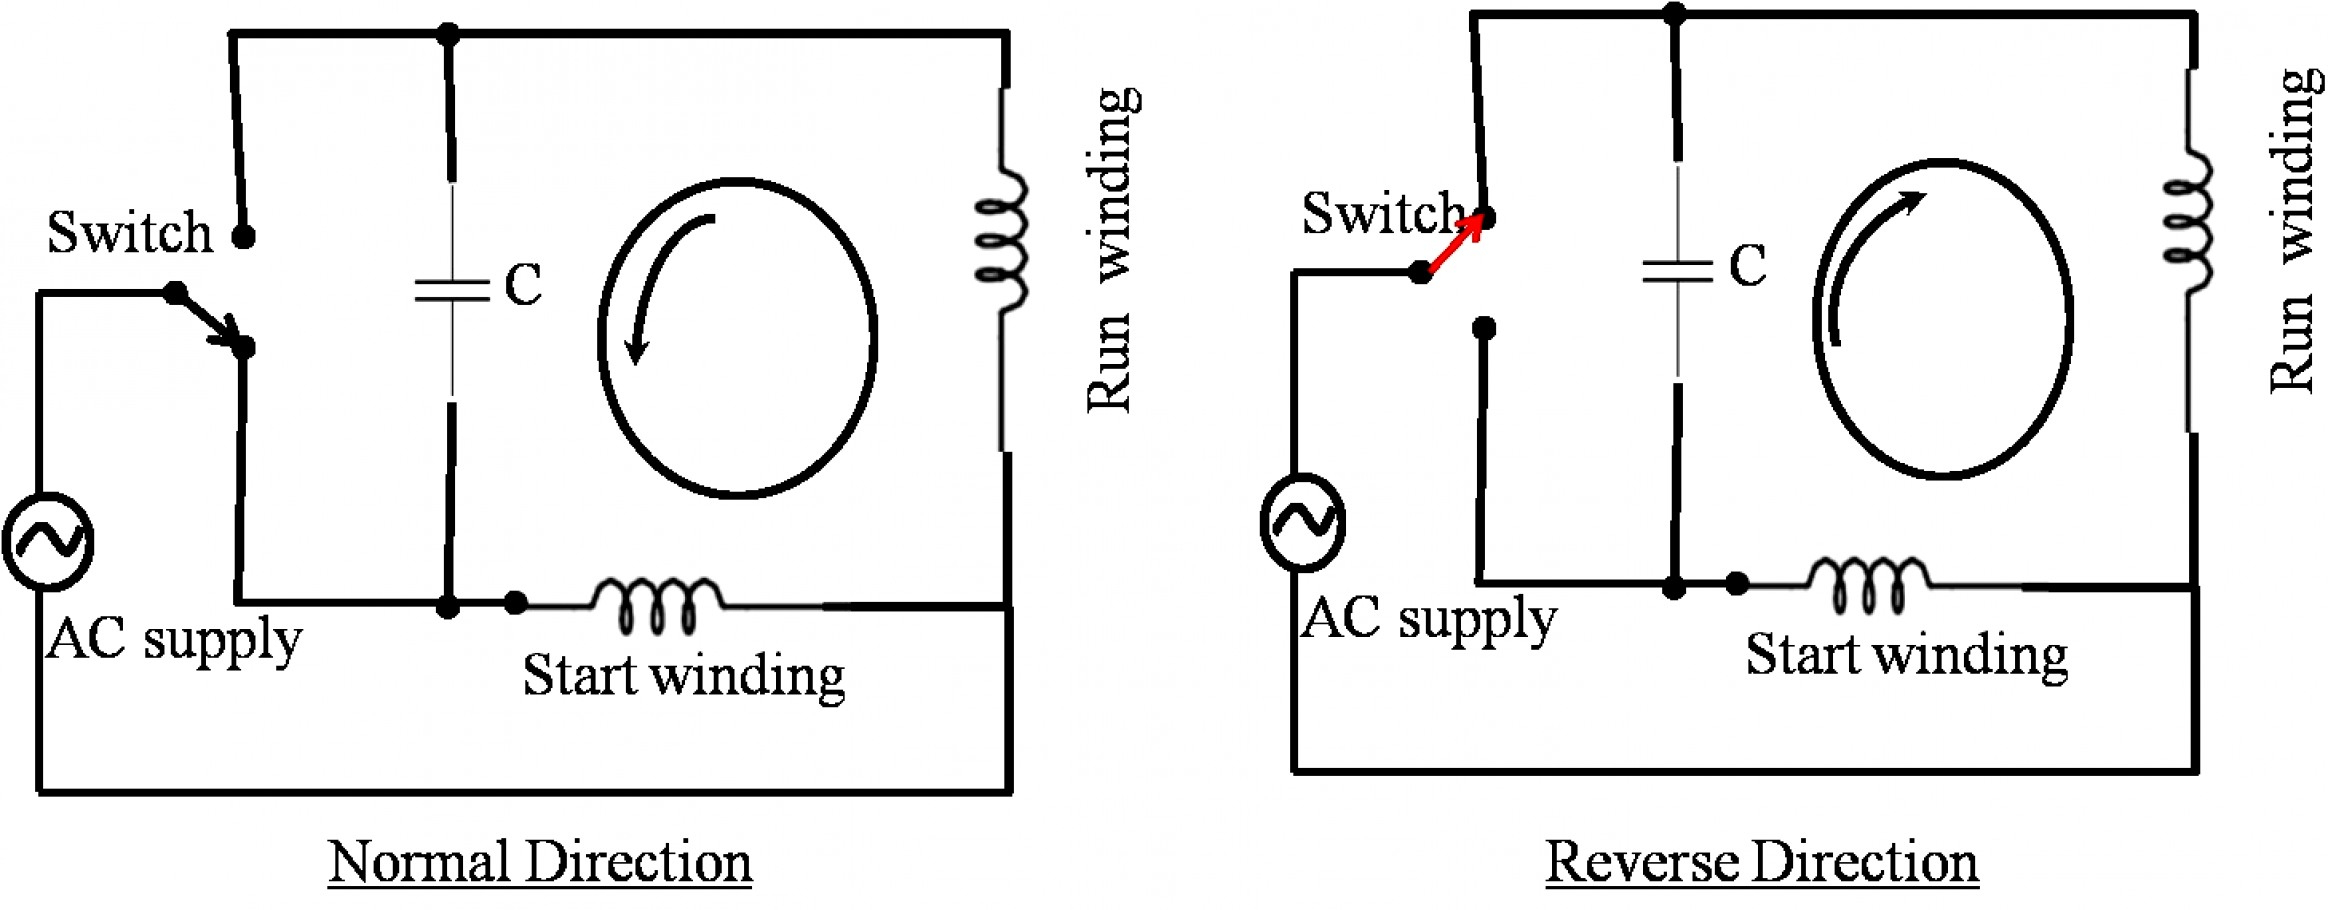 Switch The Figure Below Shows The Simplest Possible Configuration